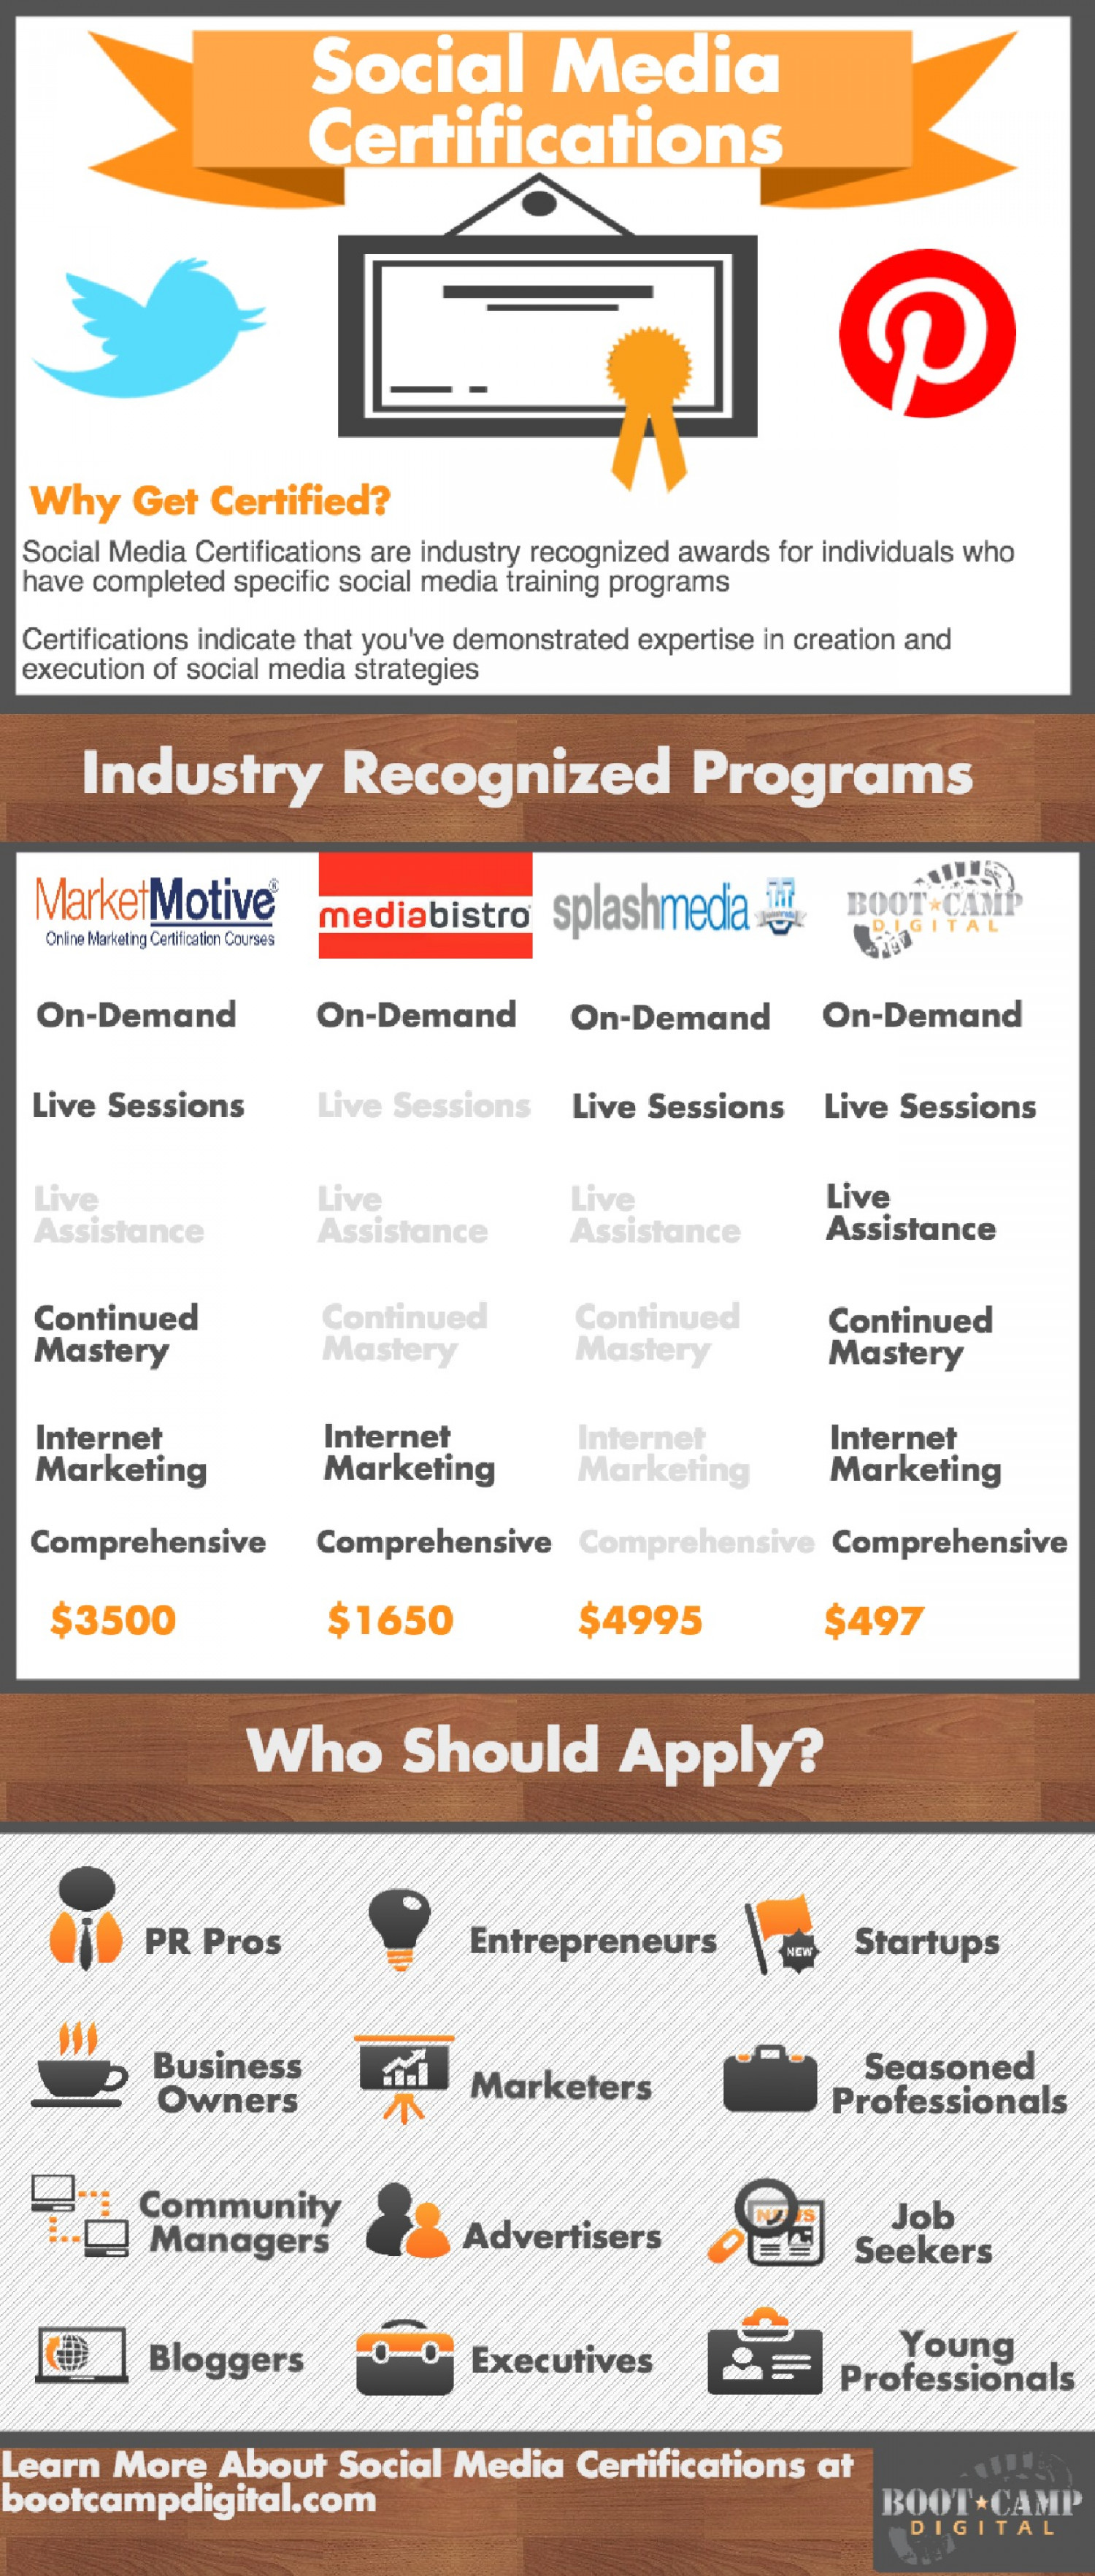 6 Things To Look For In A Social Media Certification Program Infographic